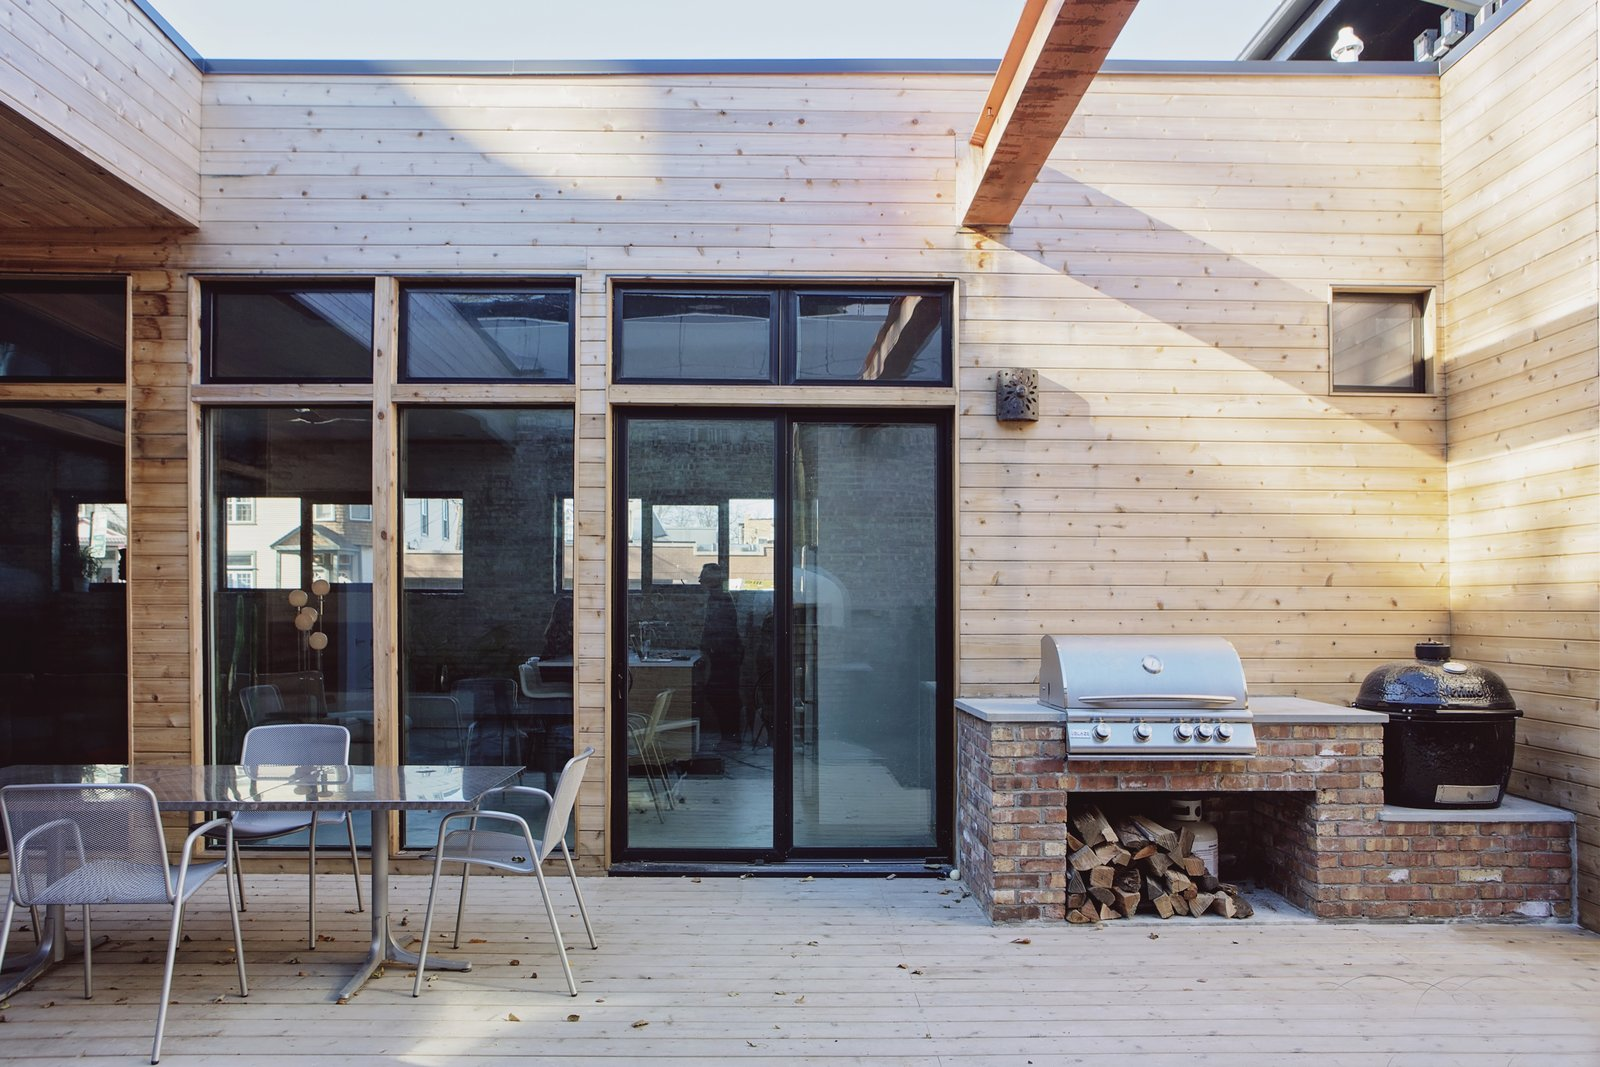 Outdoor, Side Yard, Wood Patio, Porch, Deck, and Small Patio, Porch, Deck Cedar siding elevates the look of the center courtyard which is a perfect spot for entertaining.  Photo 9 of 29 in Before & After: A Rundown Bodega in Chicago Is Reimagined Into a Vibrant Live/Work Space